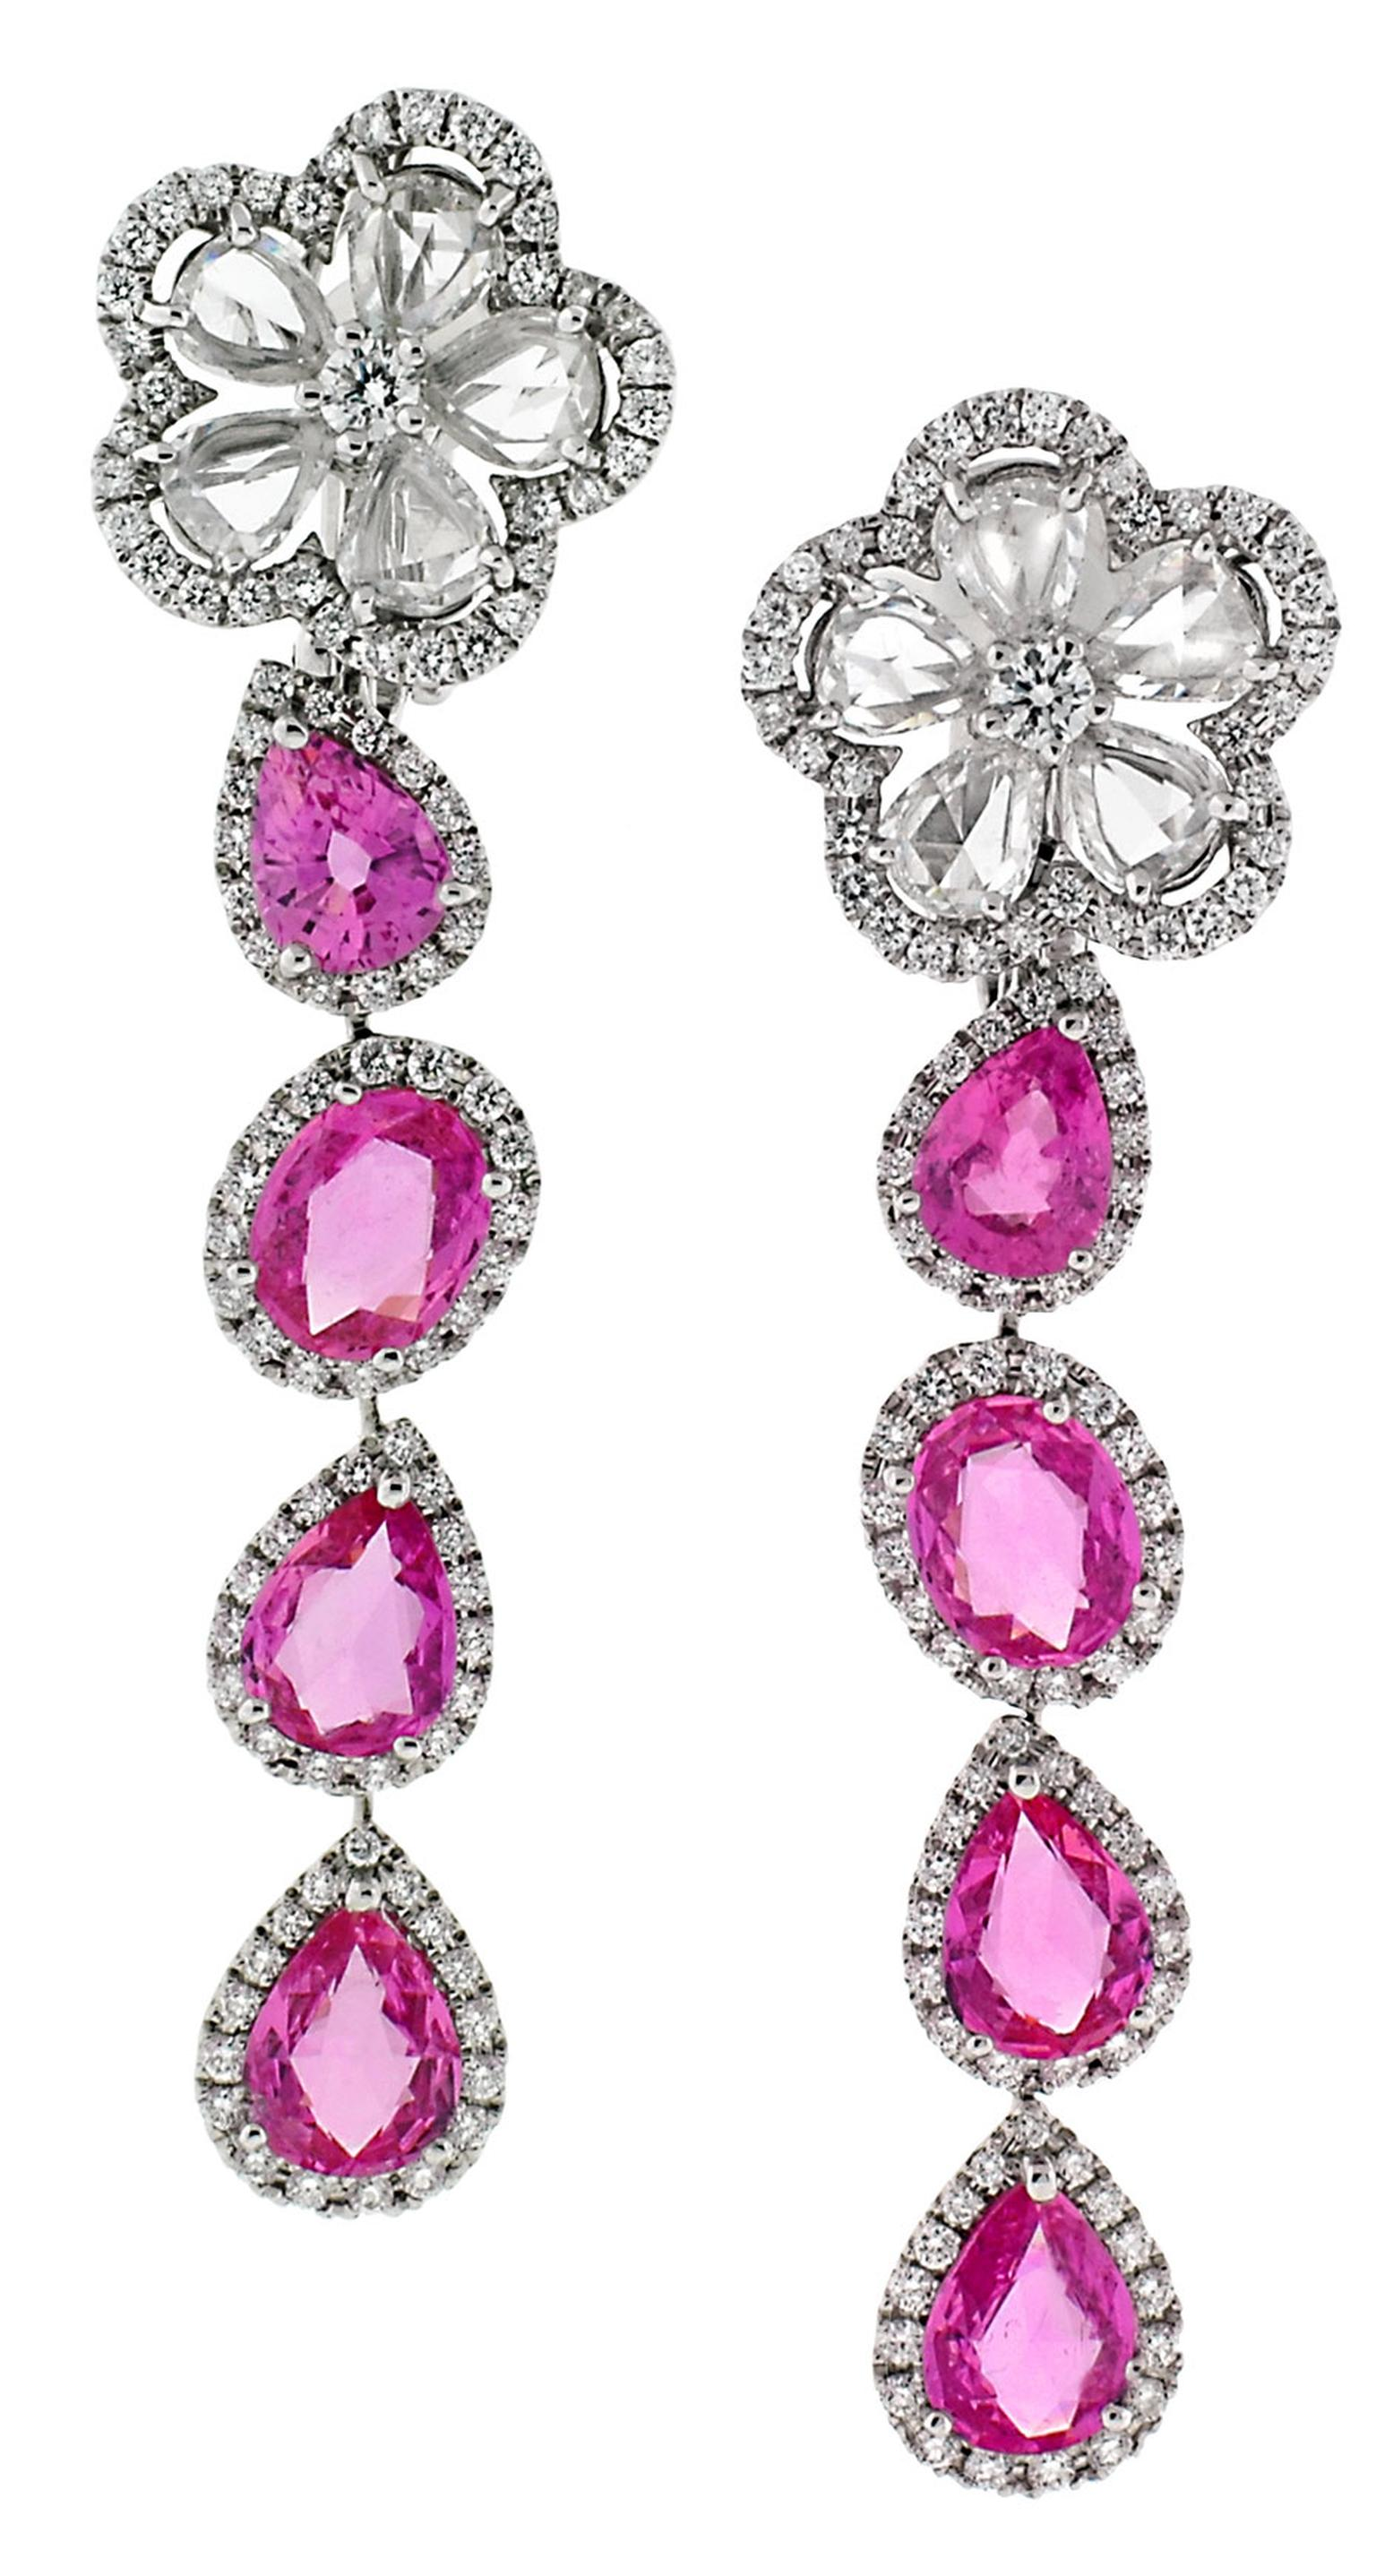 Kelly Preston also wore matching pink sapphire and diamond Avakian earrings